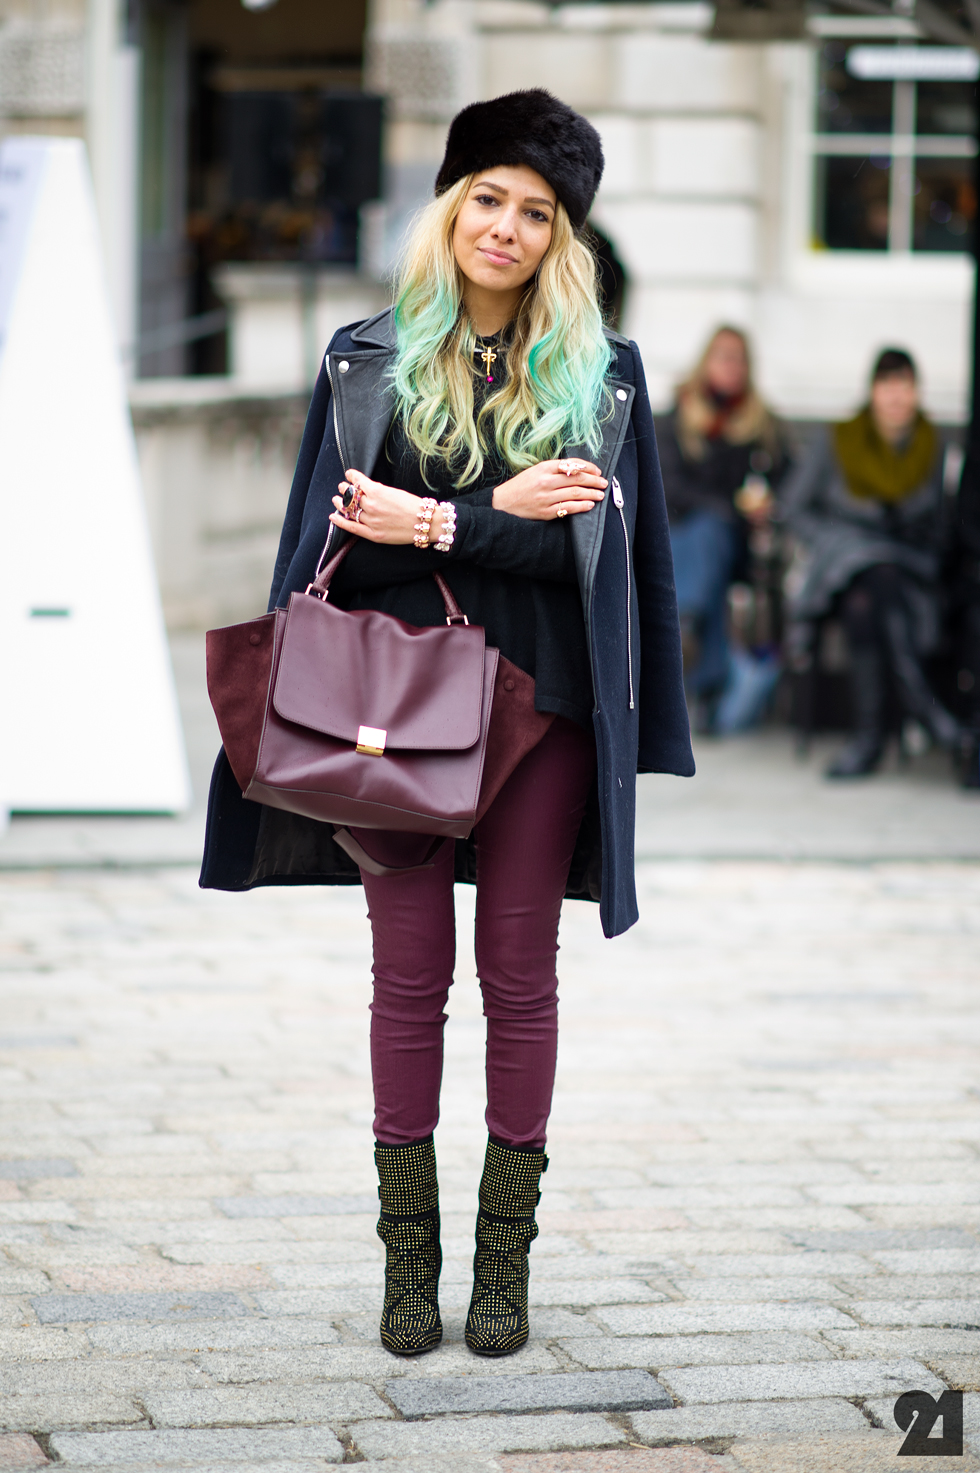 Street style hats Girl fashion style london